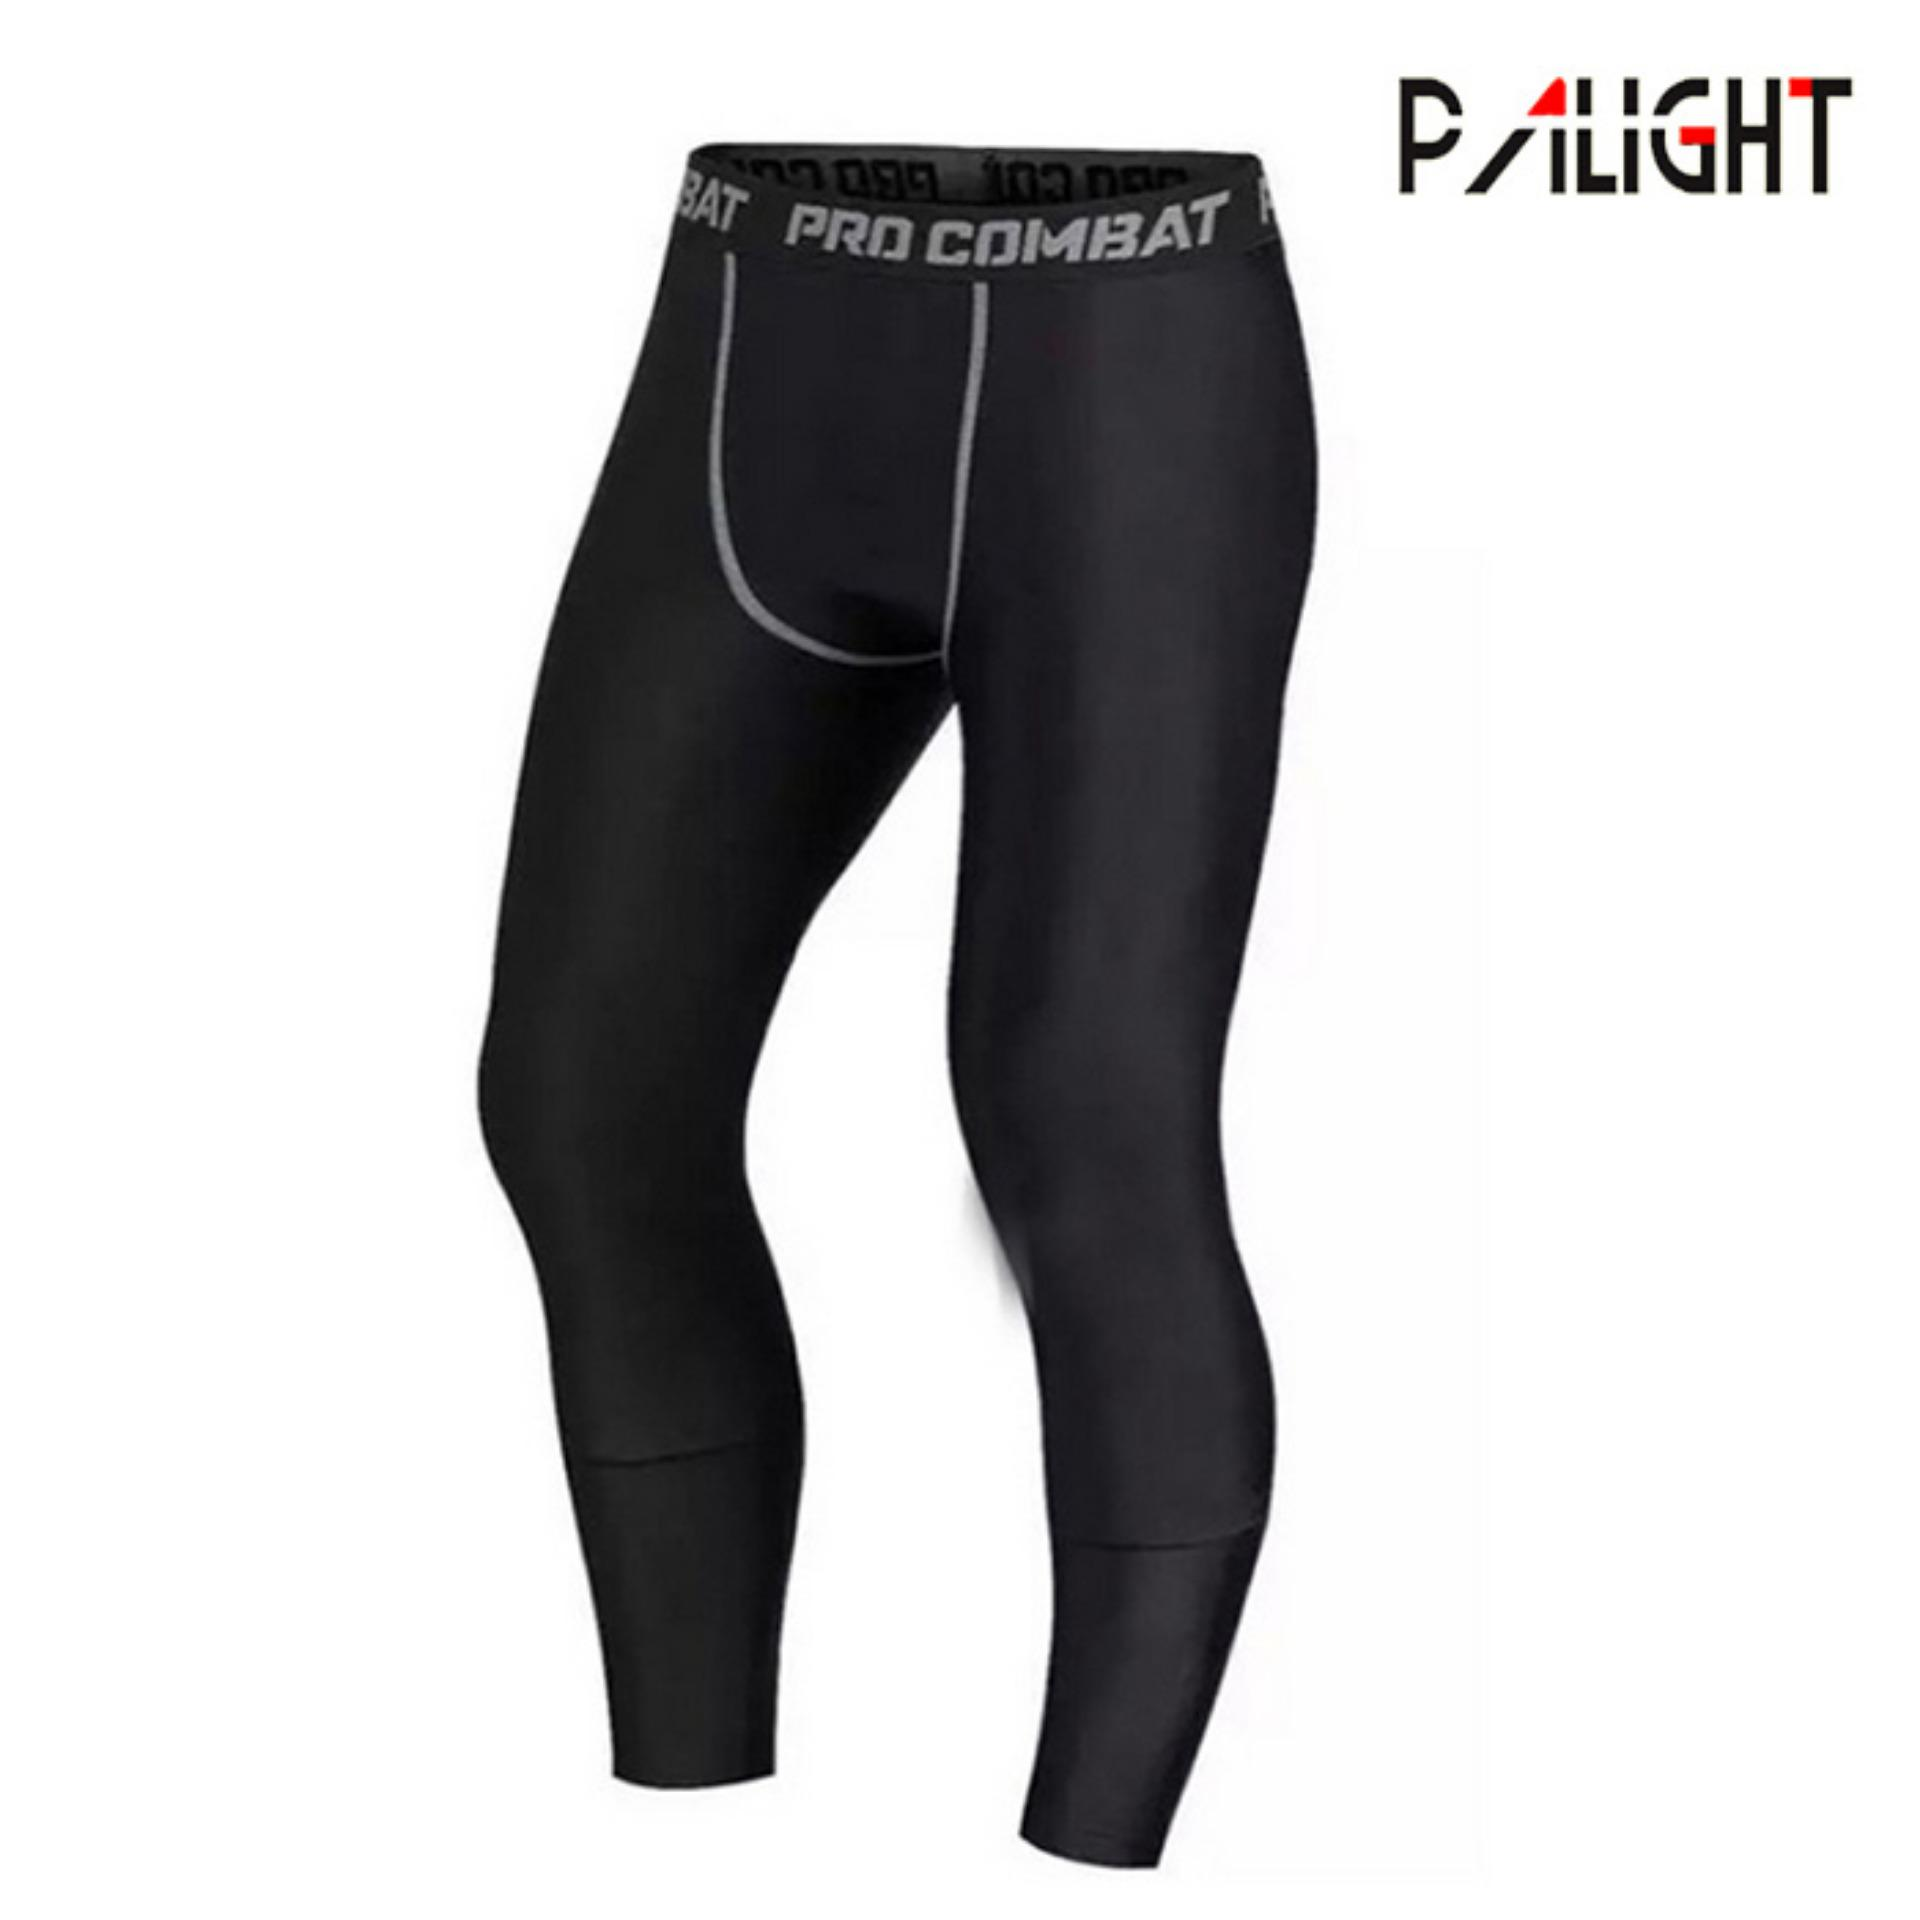 PAlight Men Compression Pants Gym Fitness Sports Running Leggings Tights Quick-drying Fit Training Jogging